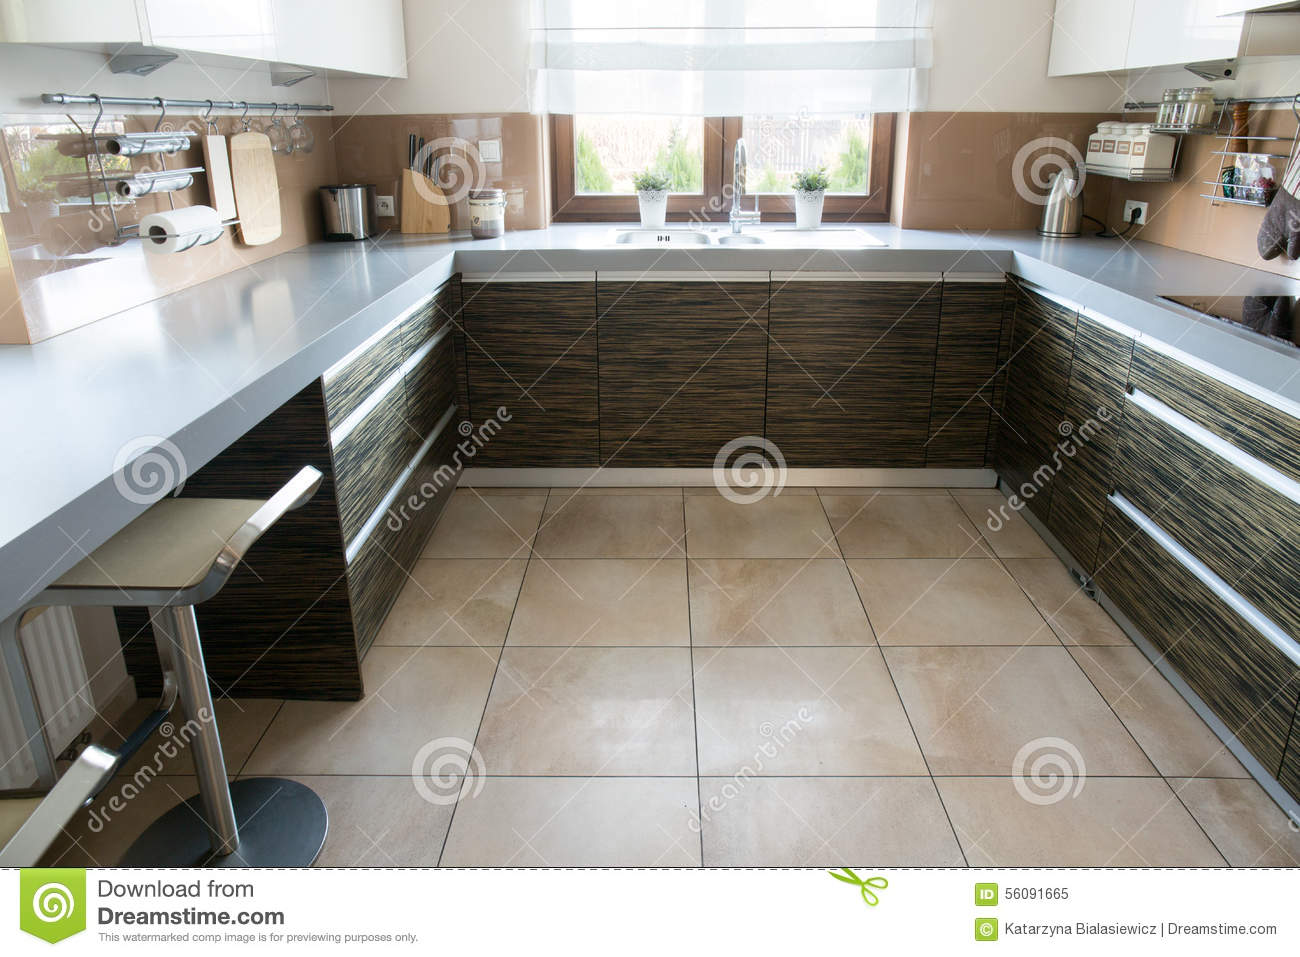 Keuken wit of beige